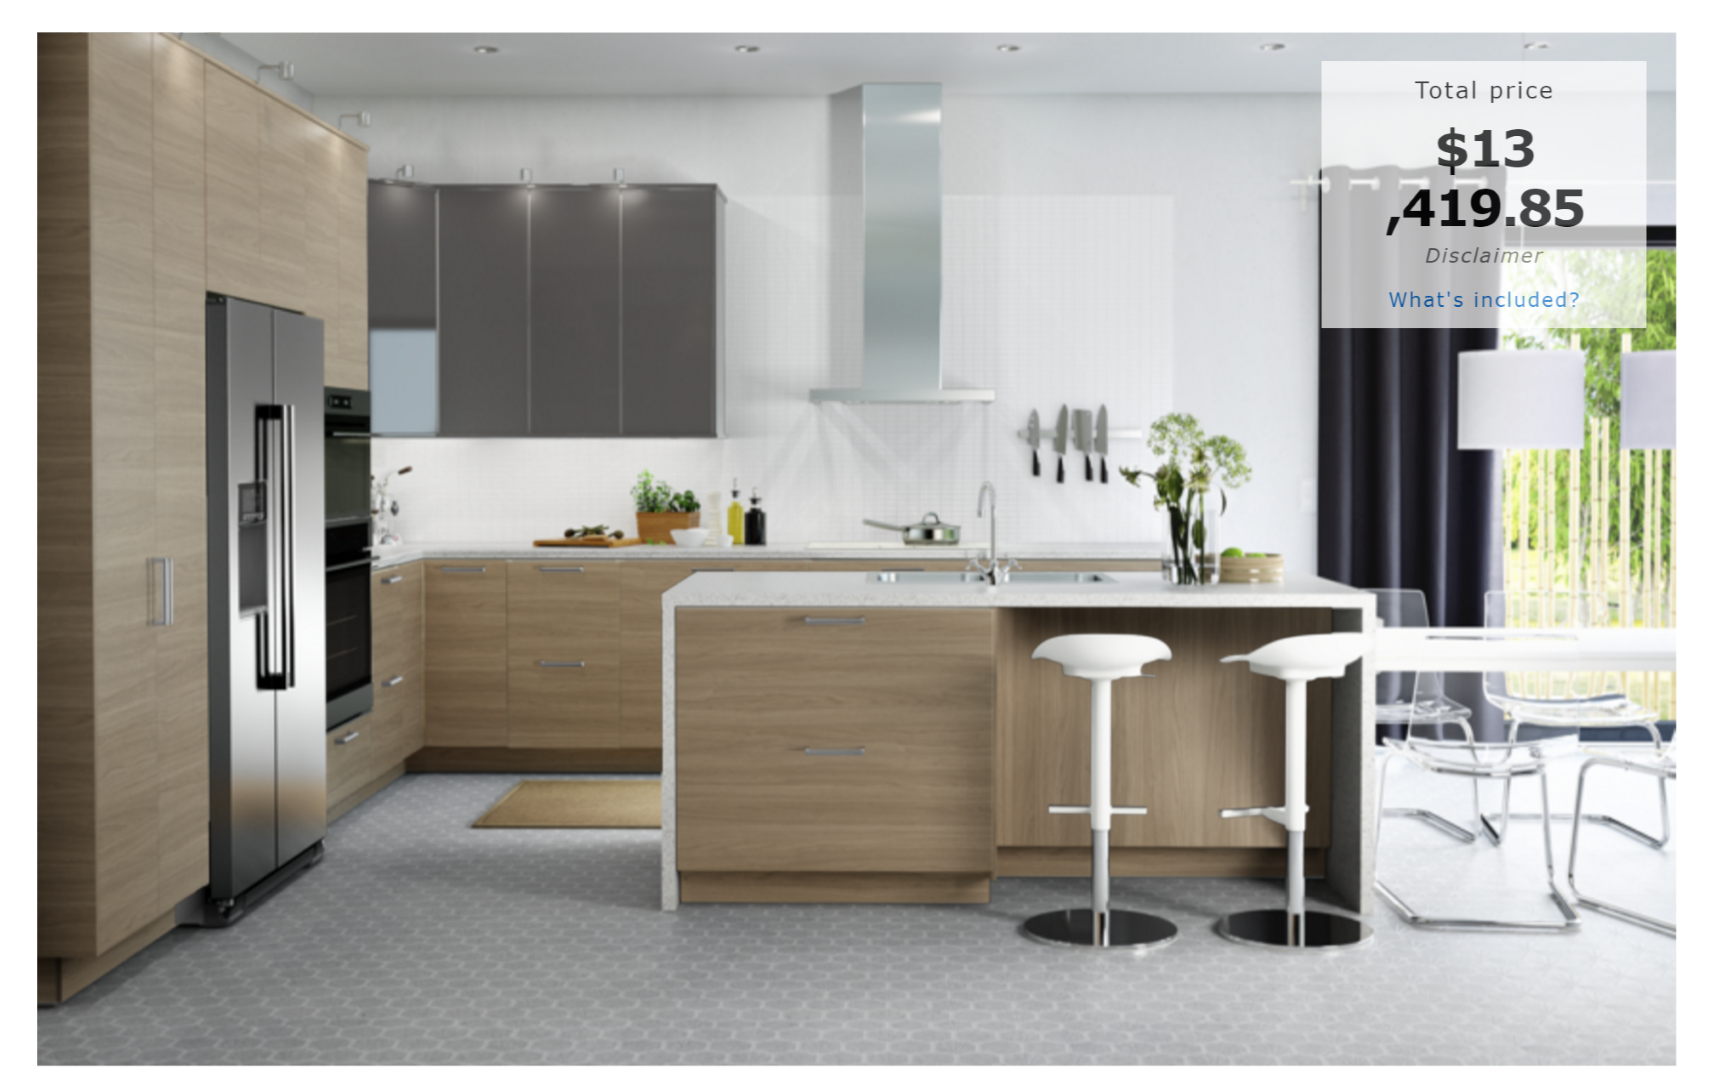 How much will an ikea kitchen cost for Average cost ikea kitchen cabinets